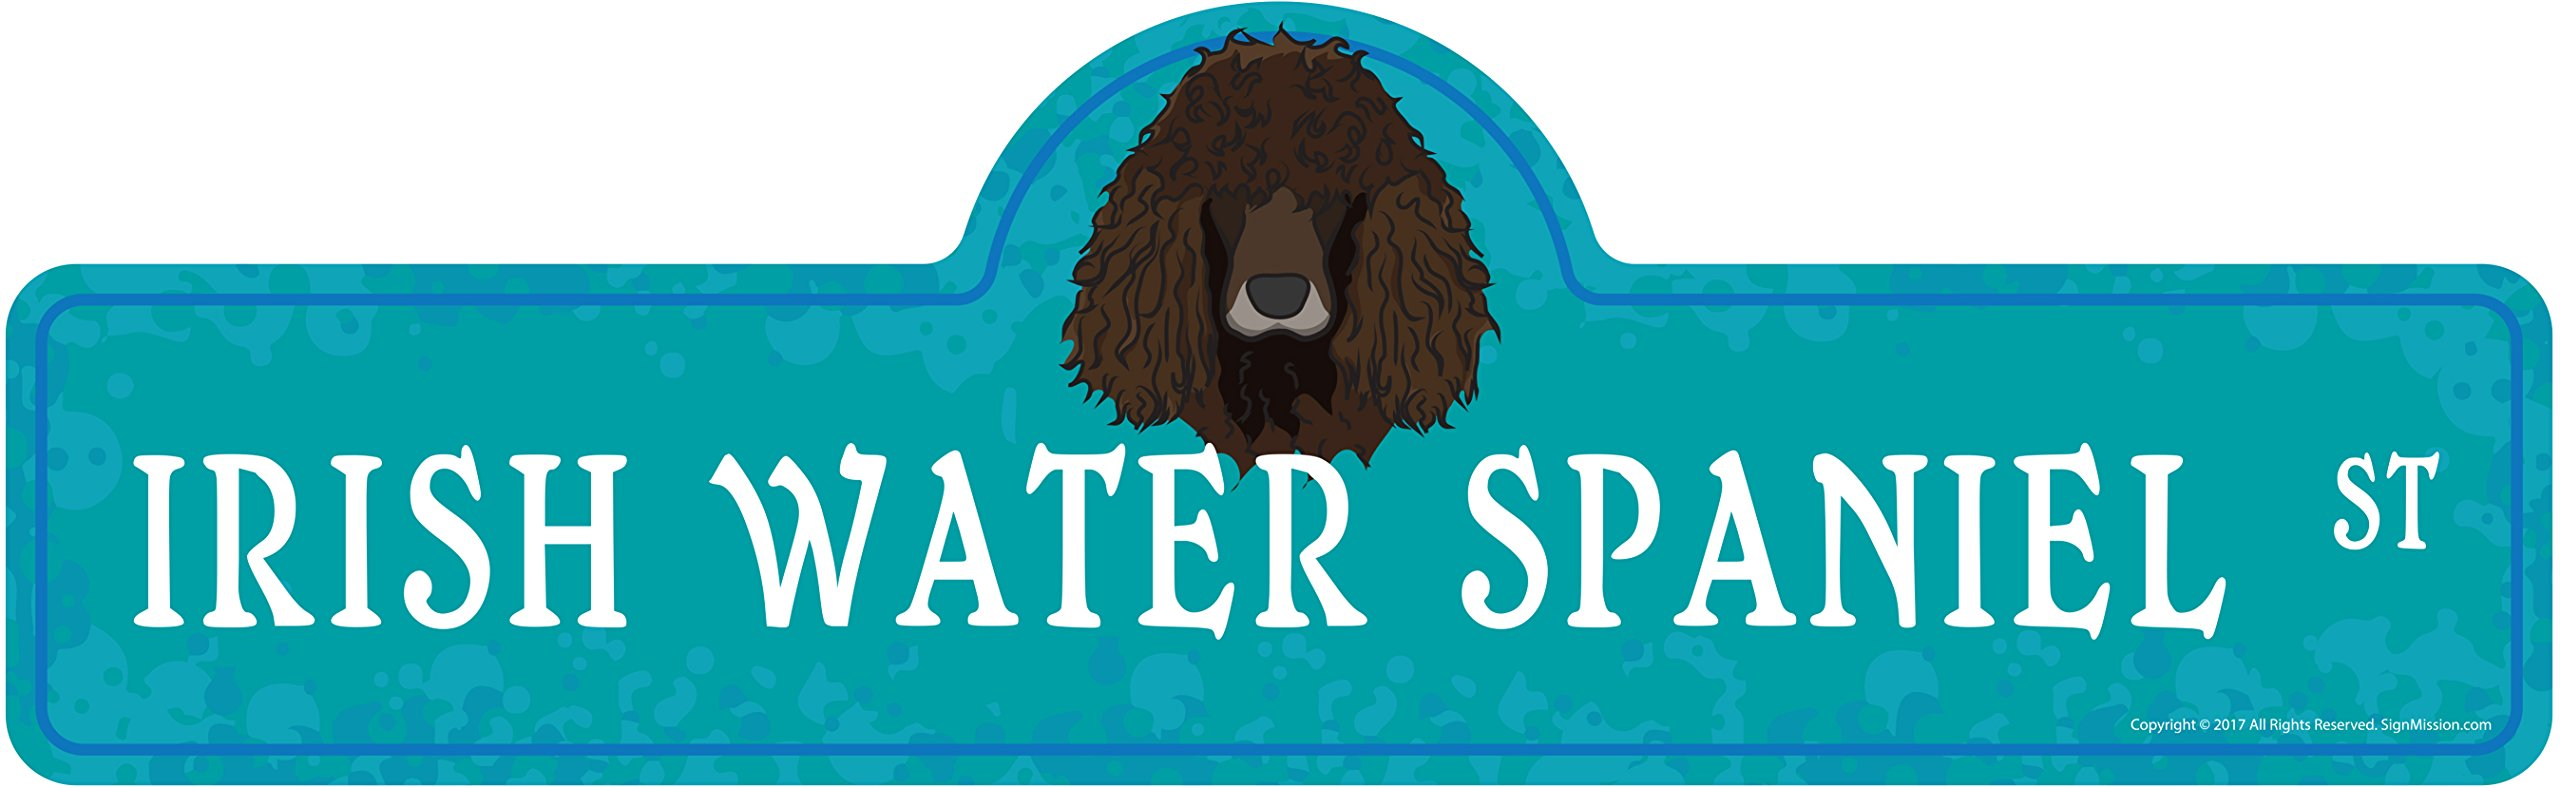 "Irish Water Spaniel Street Sign | Indoor/Outdoor | Dog Lover Funny Home Décor for Garages, Living Rooms, Bedroom, Offices | SignMission personalized gift | 36"" Wide Plastic Sign 1"